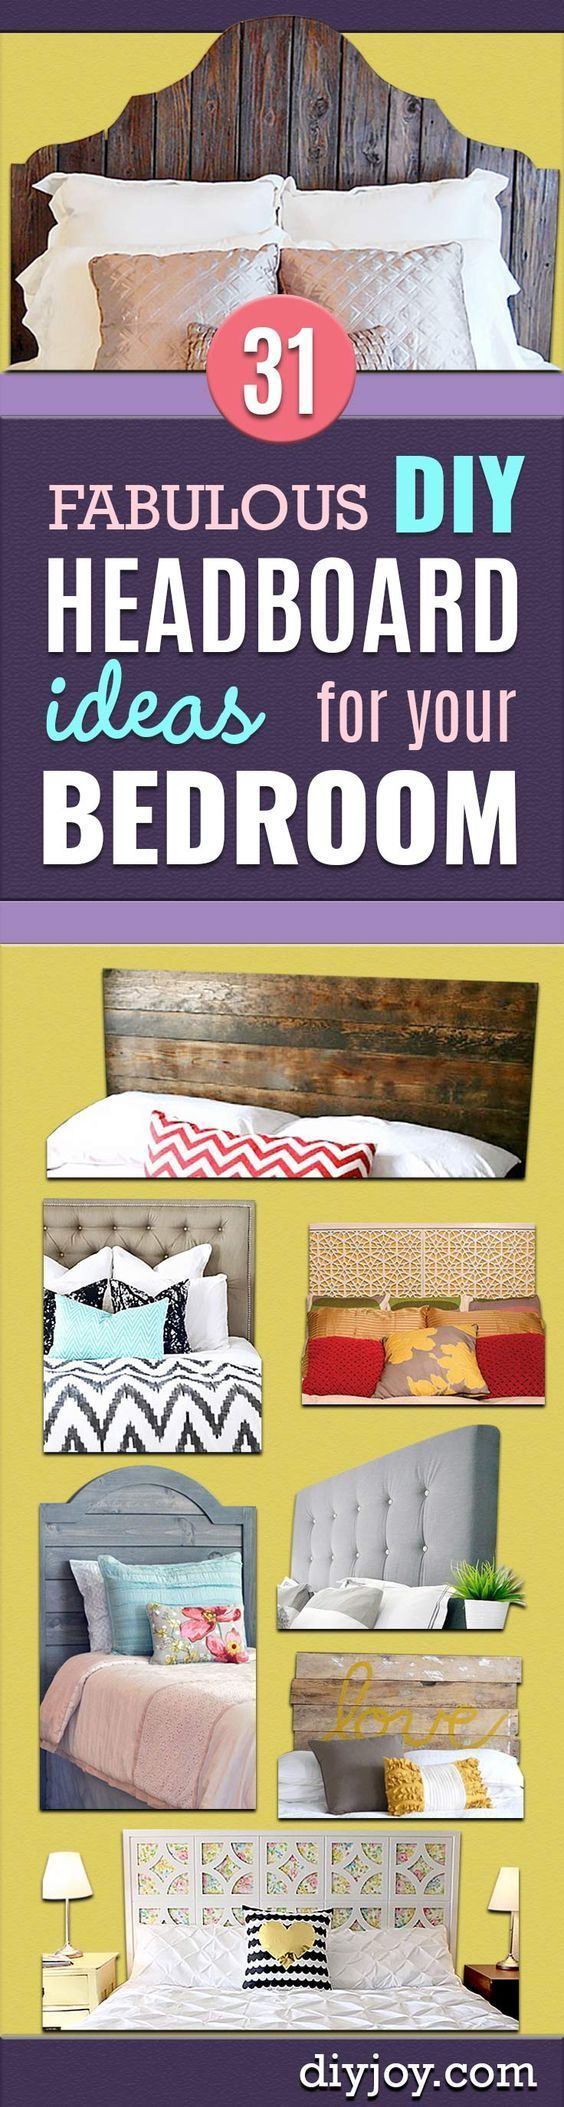 51 51 diy headboard ideas to make the bed of your dreams snappy pixels - 31 Fabulous Diy Headboard Ideas For Your Bedroom